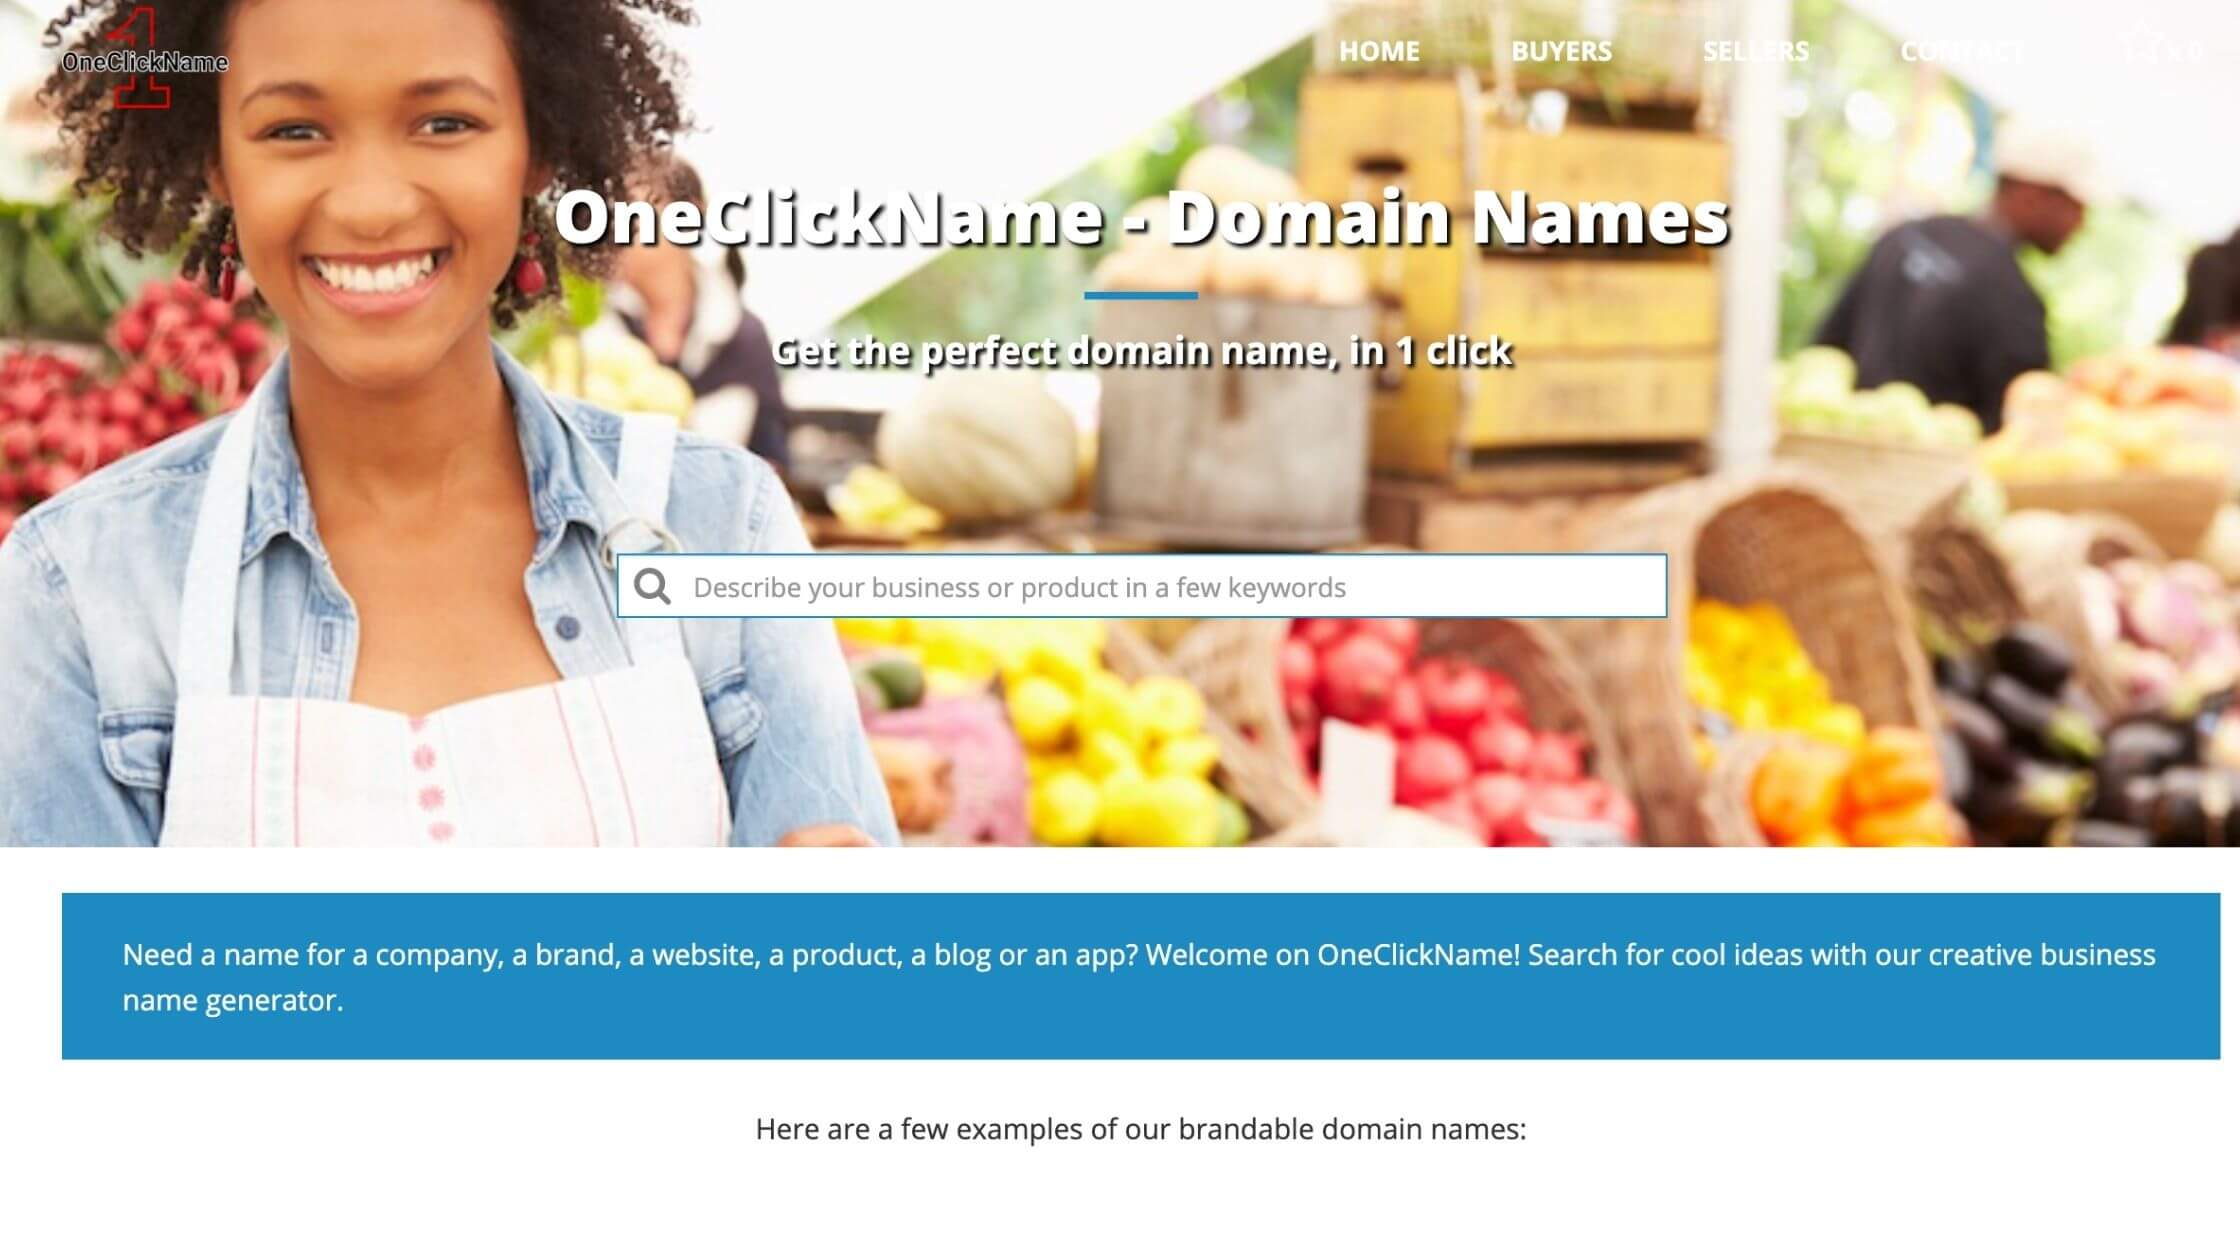 One click name